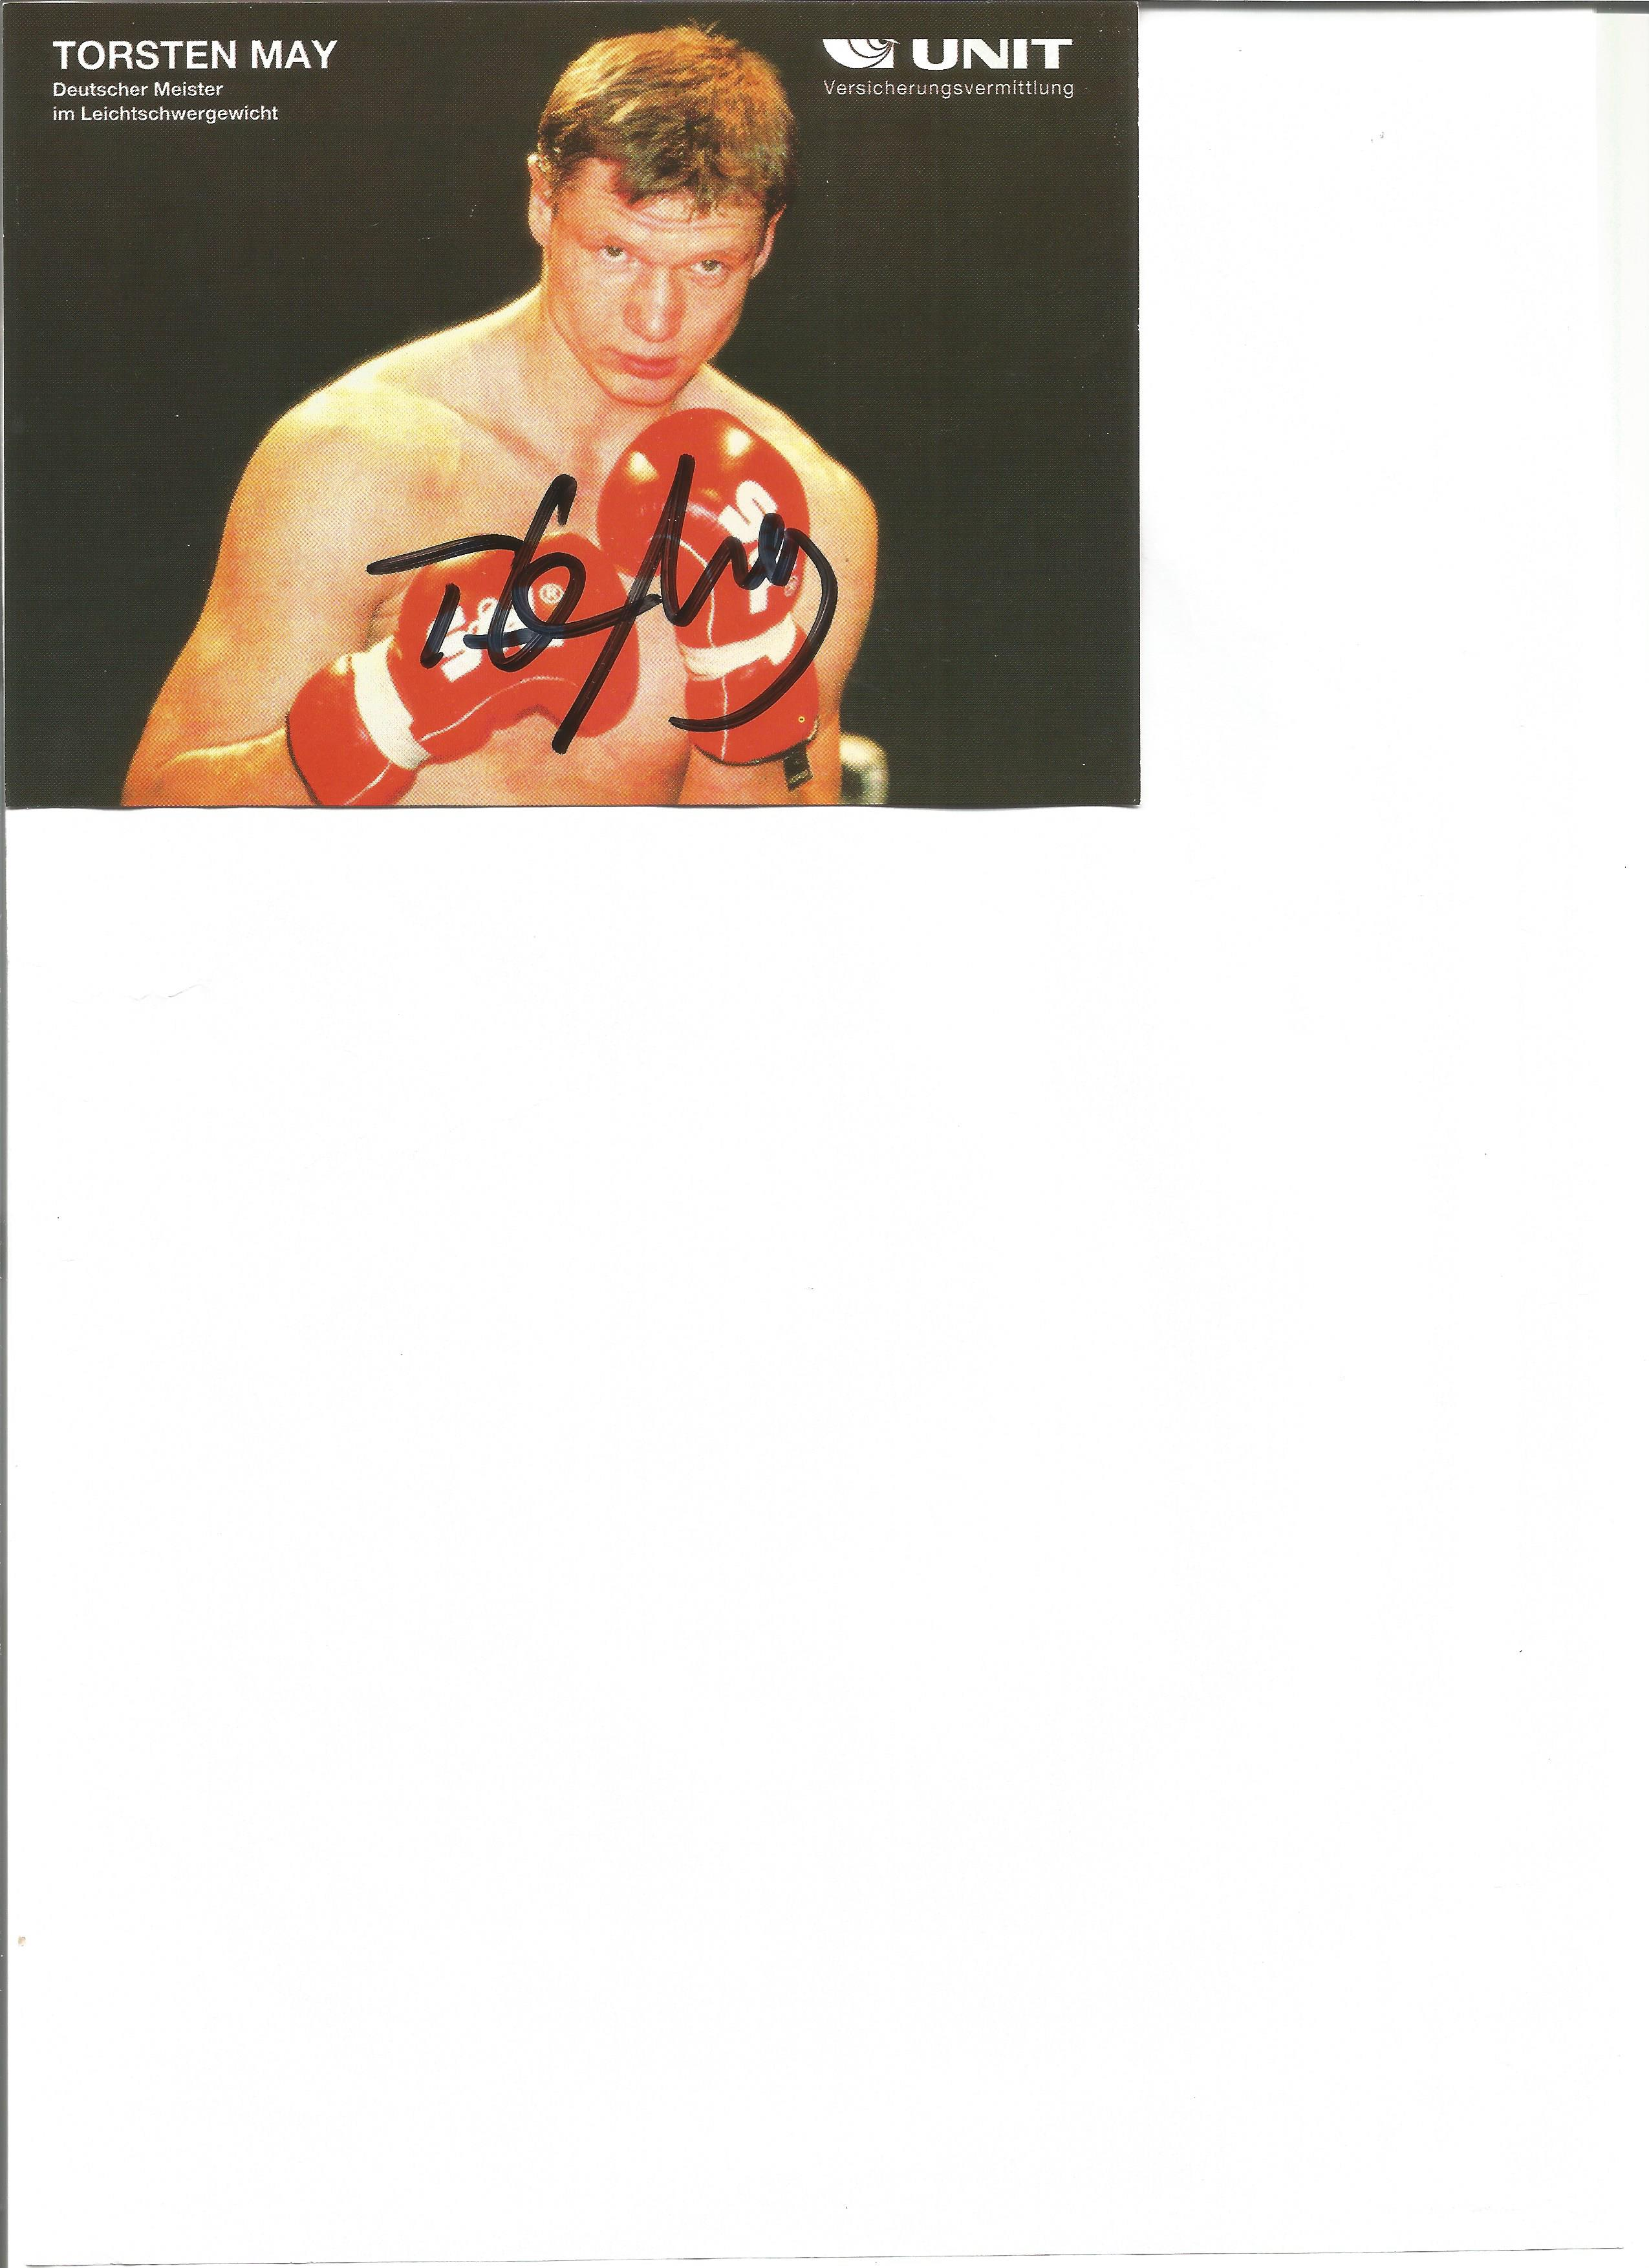 Lot 192 - Boxing Torsten May signed 6 x 4 inch colour photo. Torsten May born October 9, 1969 in Glauchau,